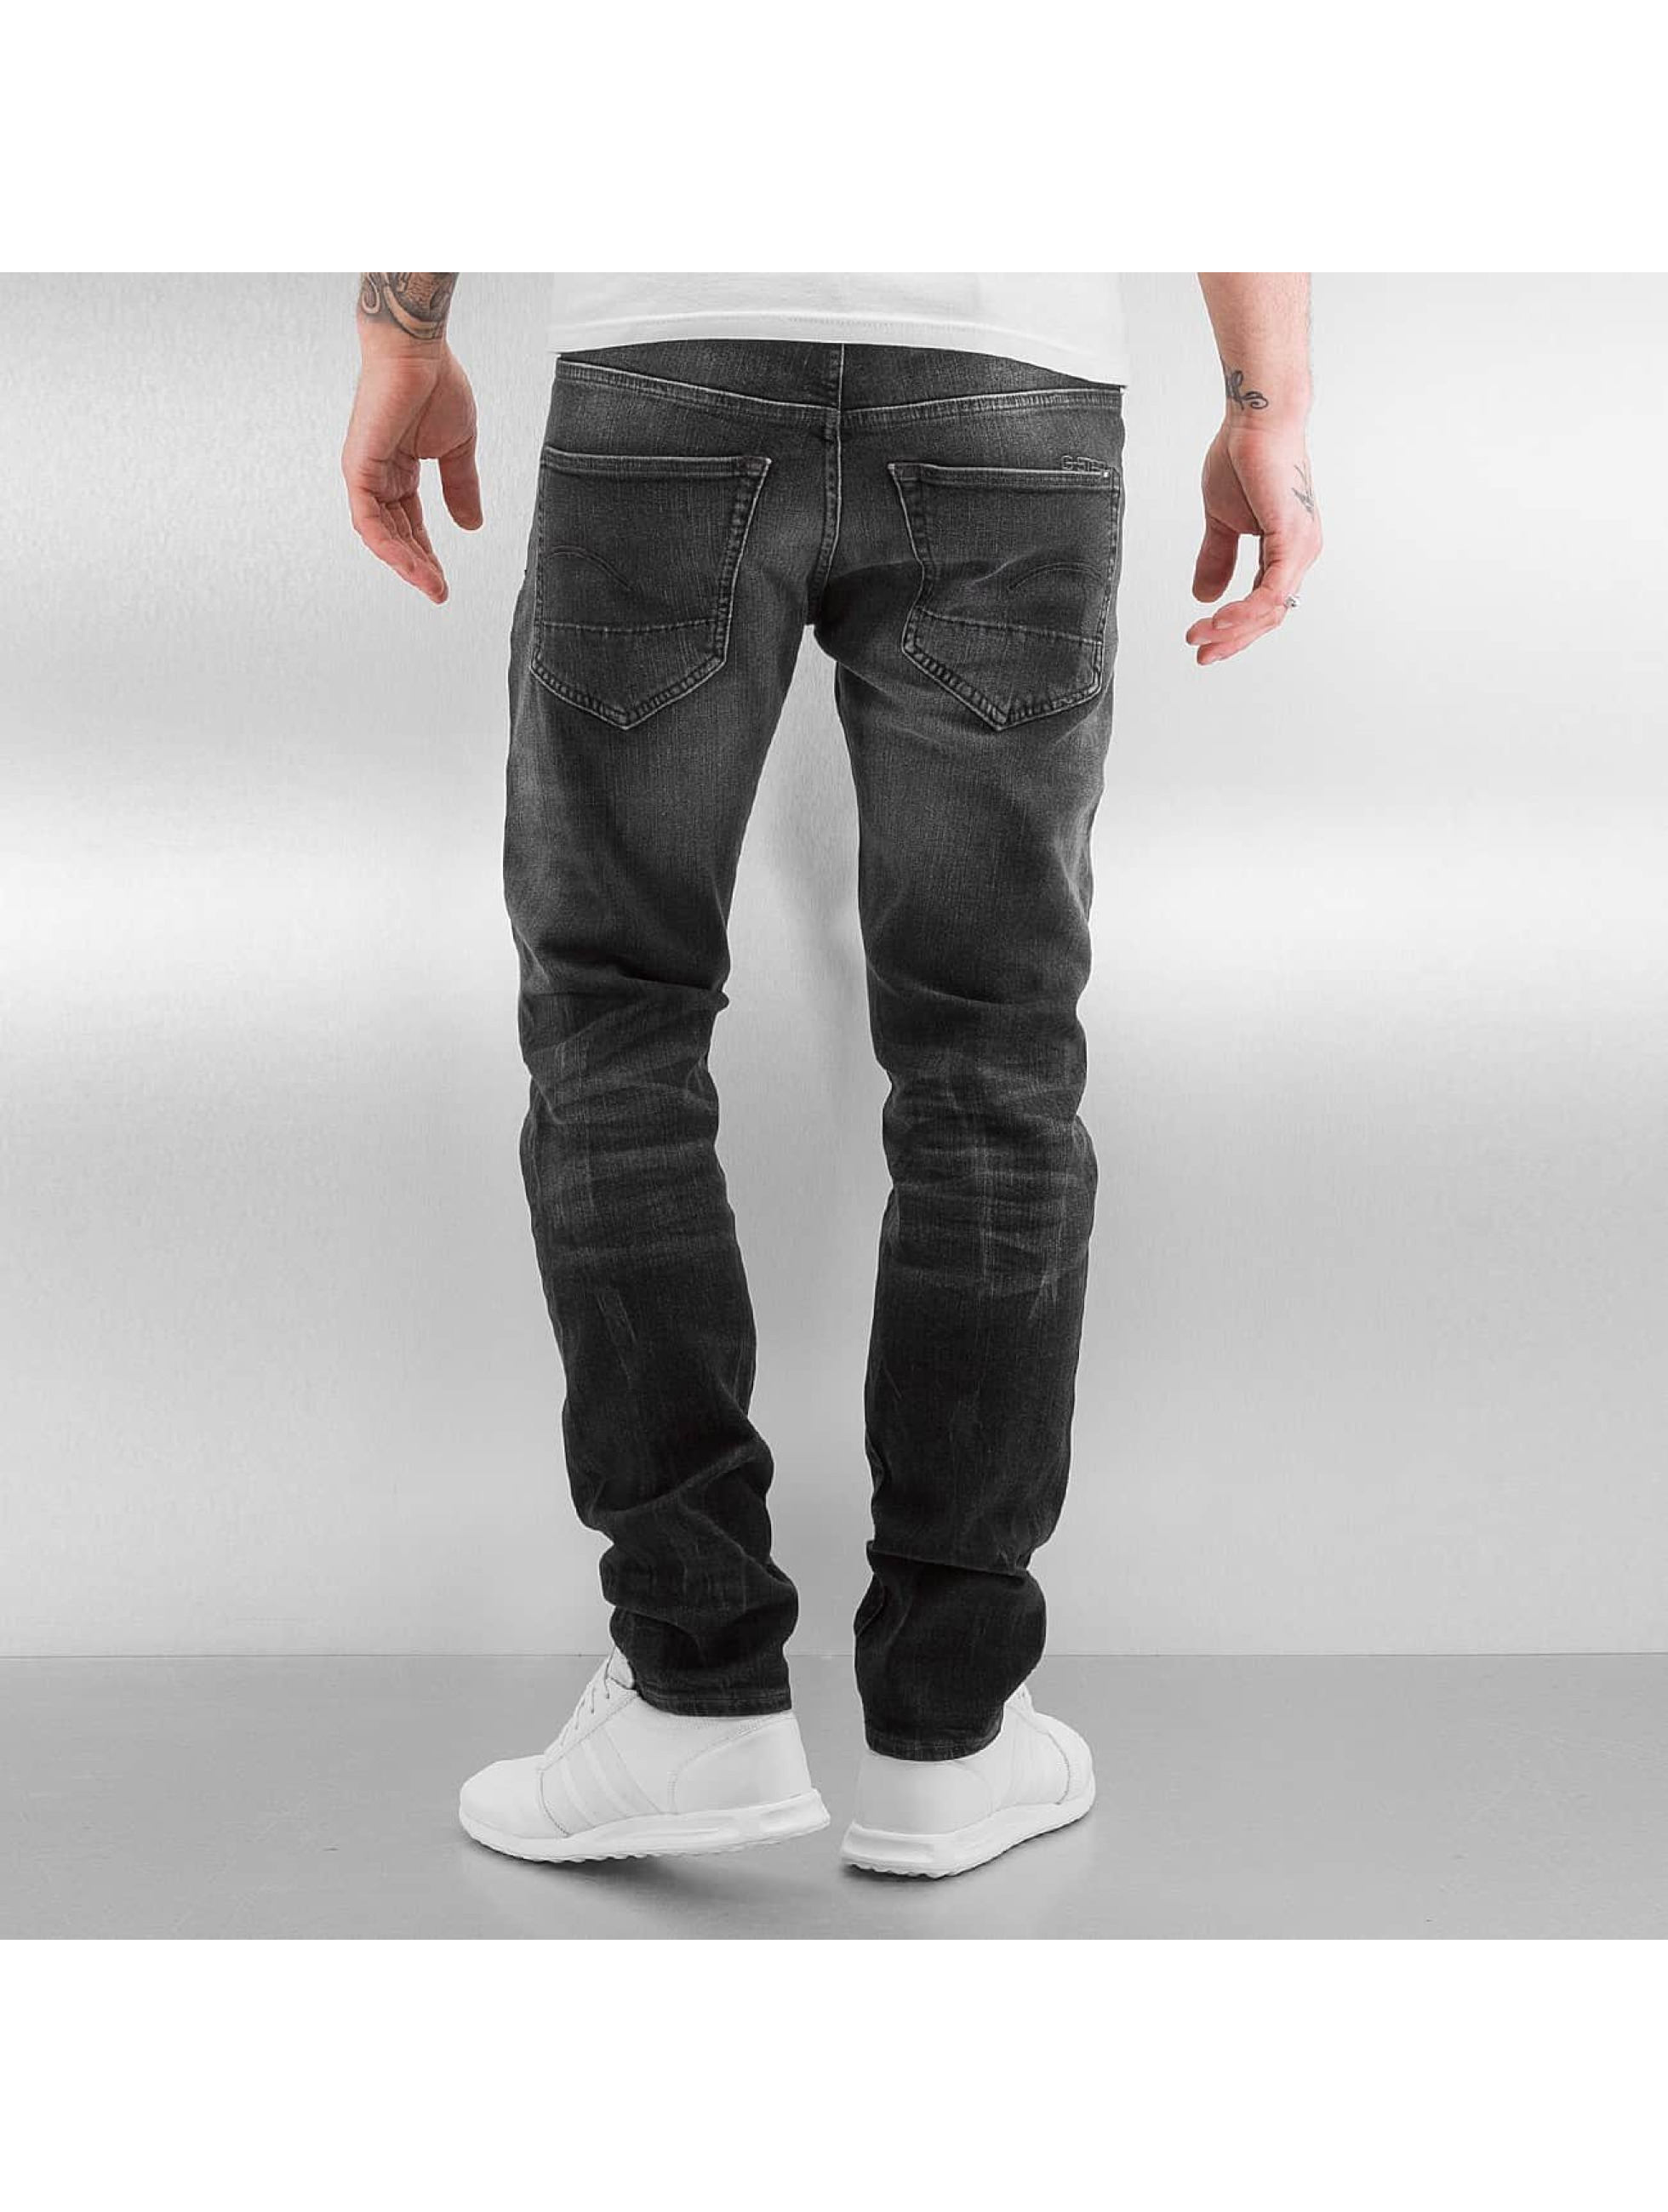 G-Star Antifit 3301 Tapered Slader Bionic Black svart